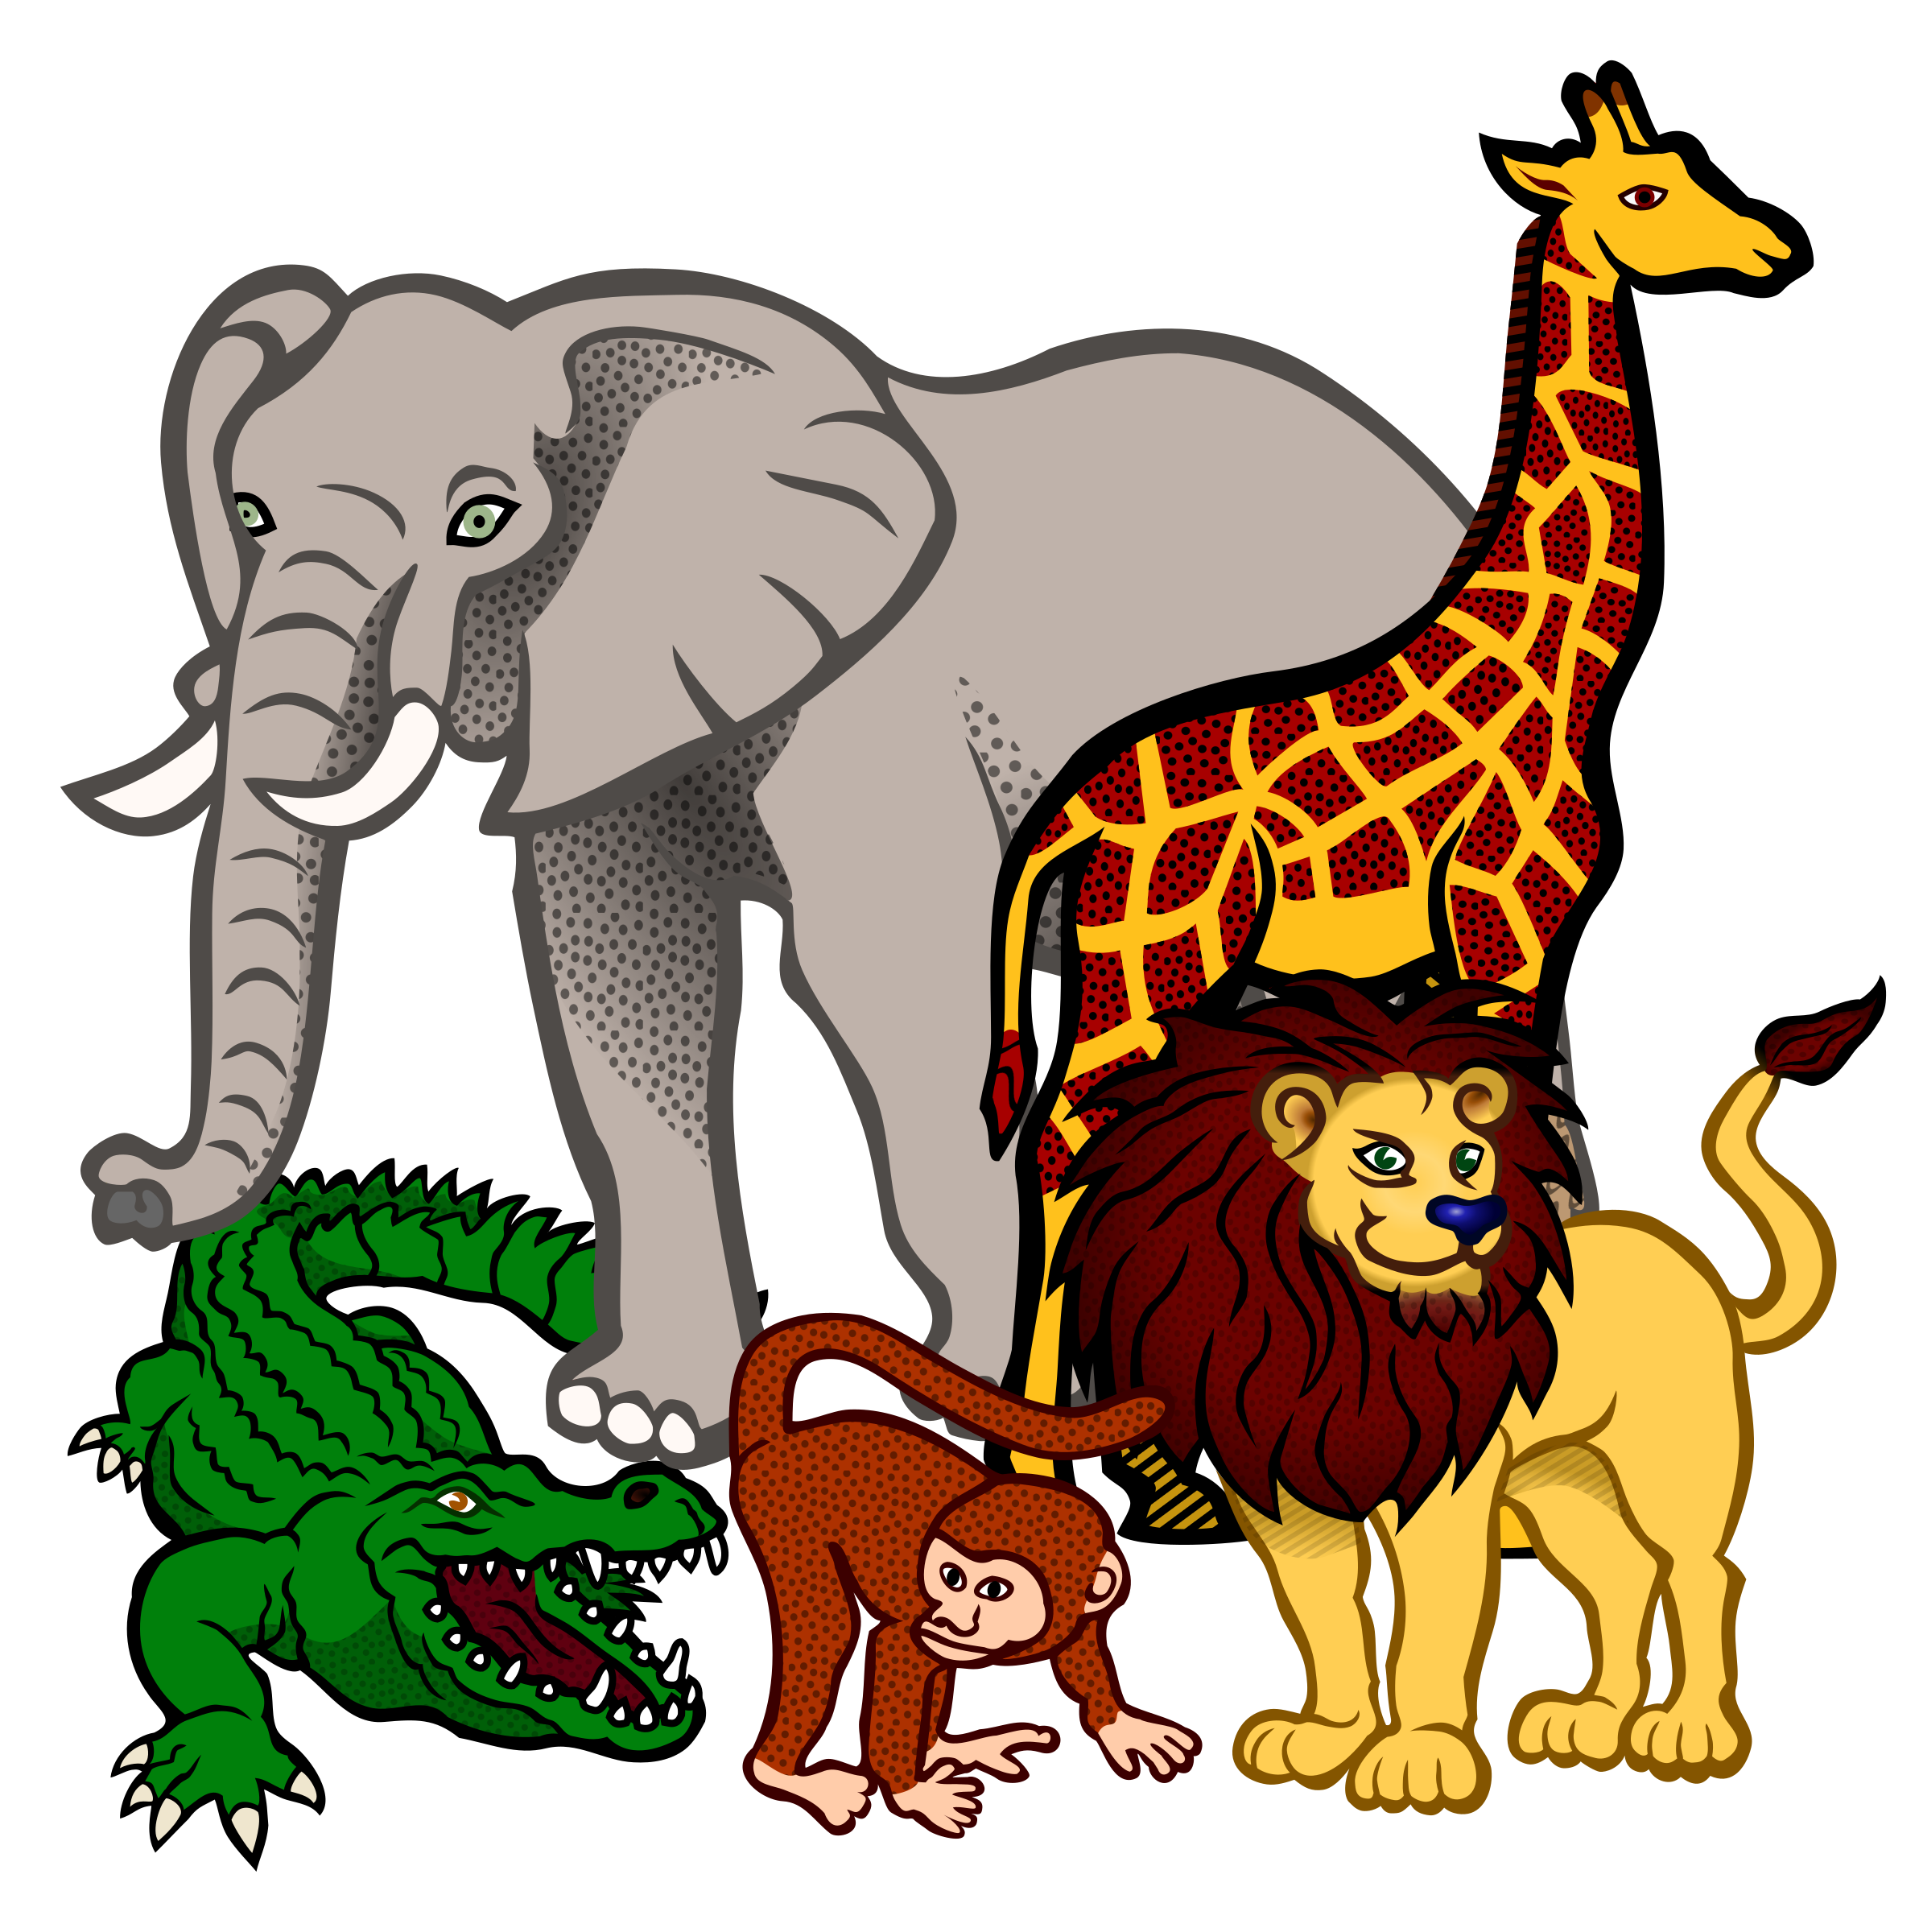 Animals clipart images jpg free download Animal Kingdom Clipart | Free download best Animal Kingdom Clipart ... jpg free download